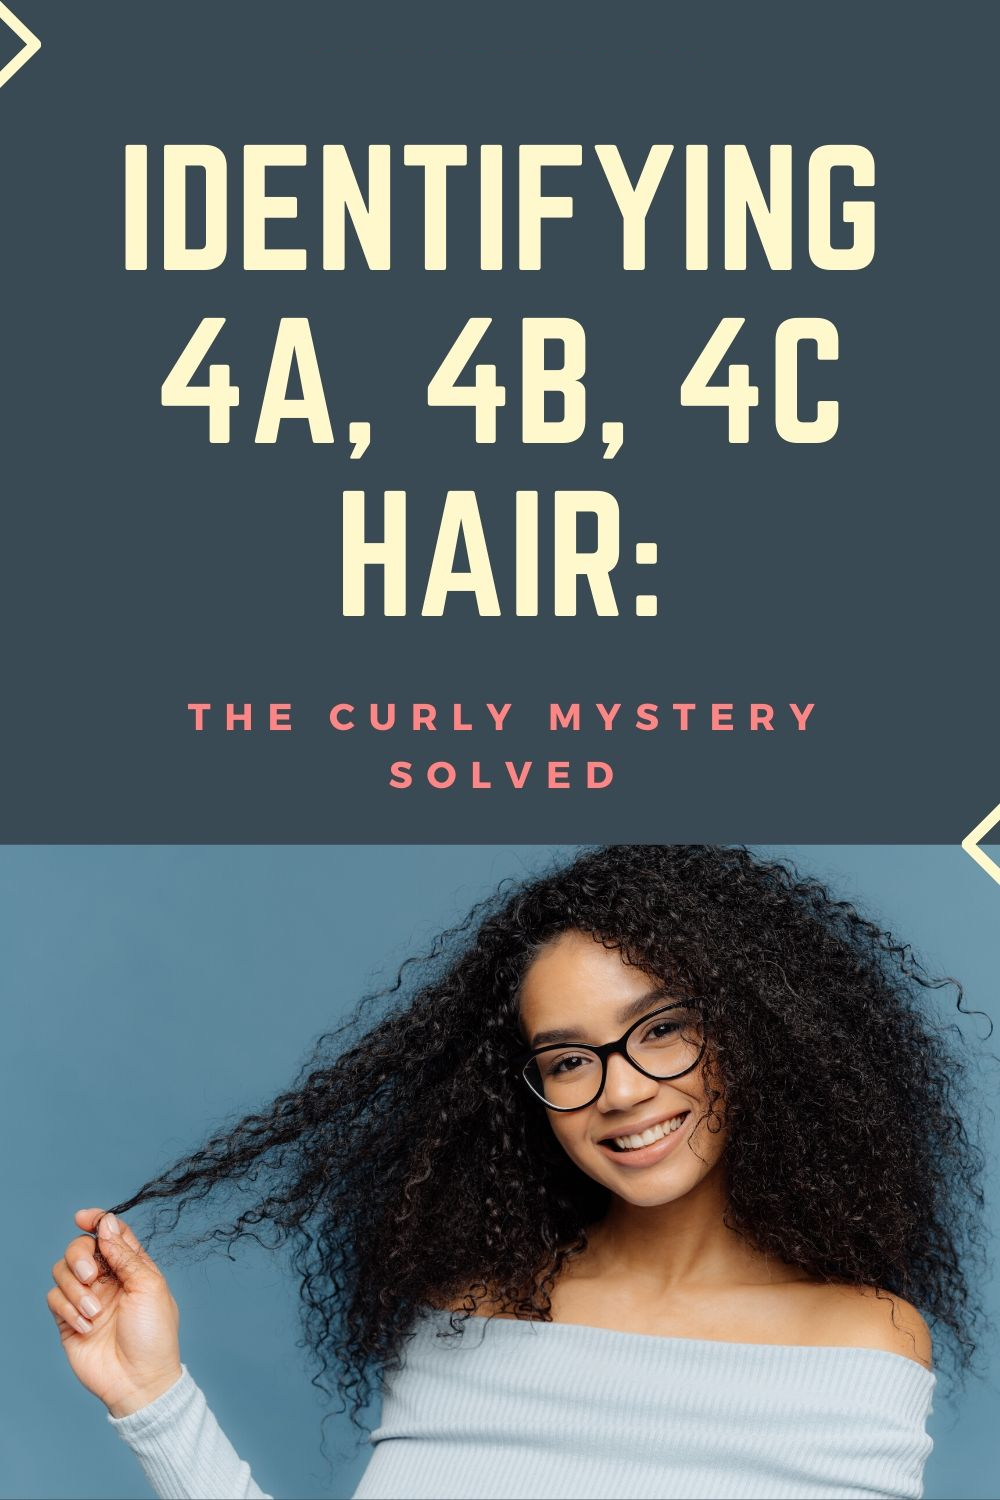 identifying 4ABC hair